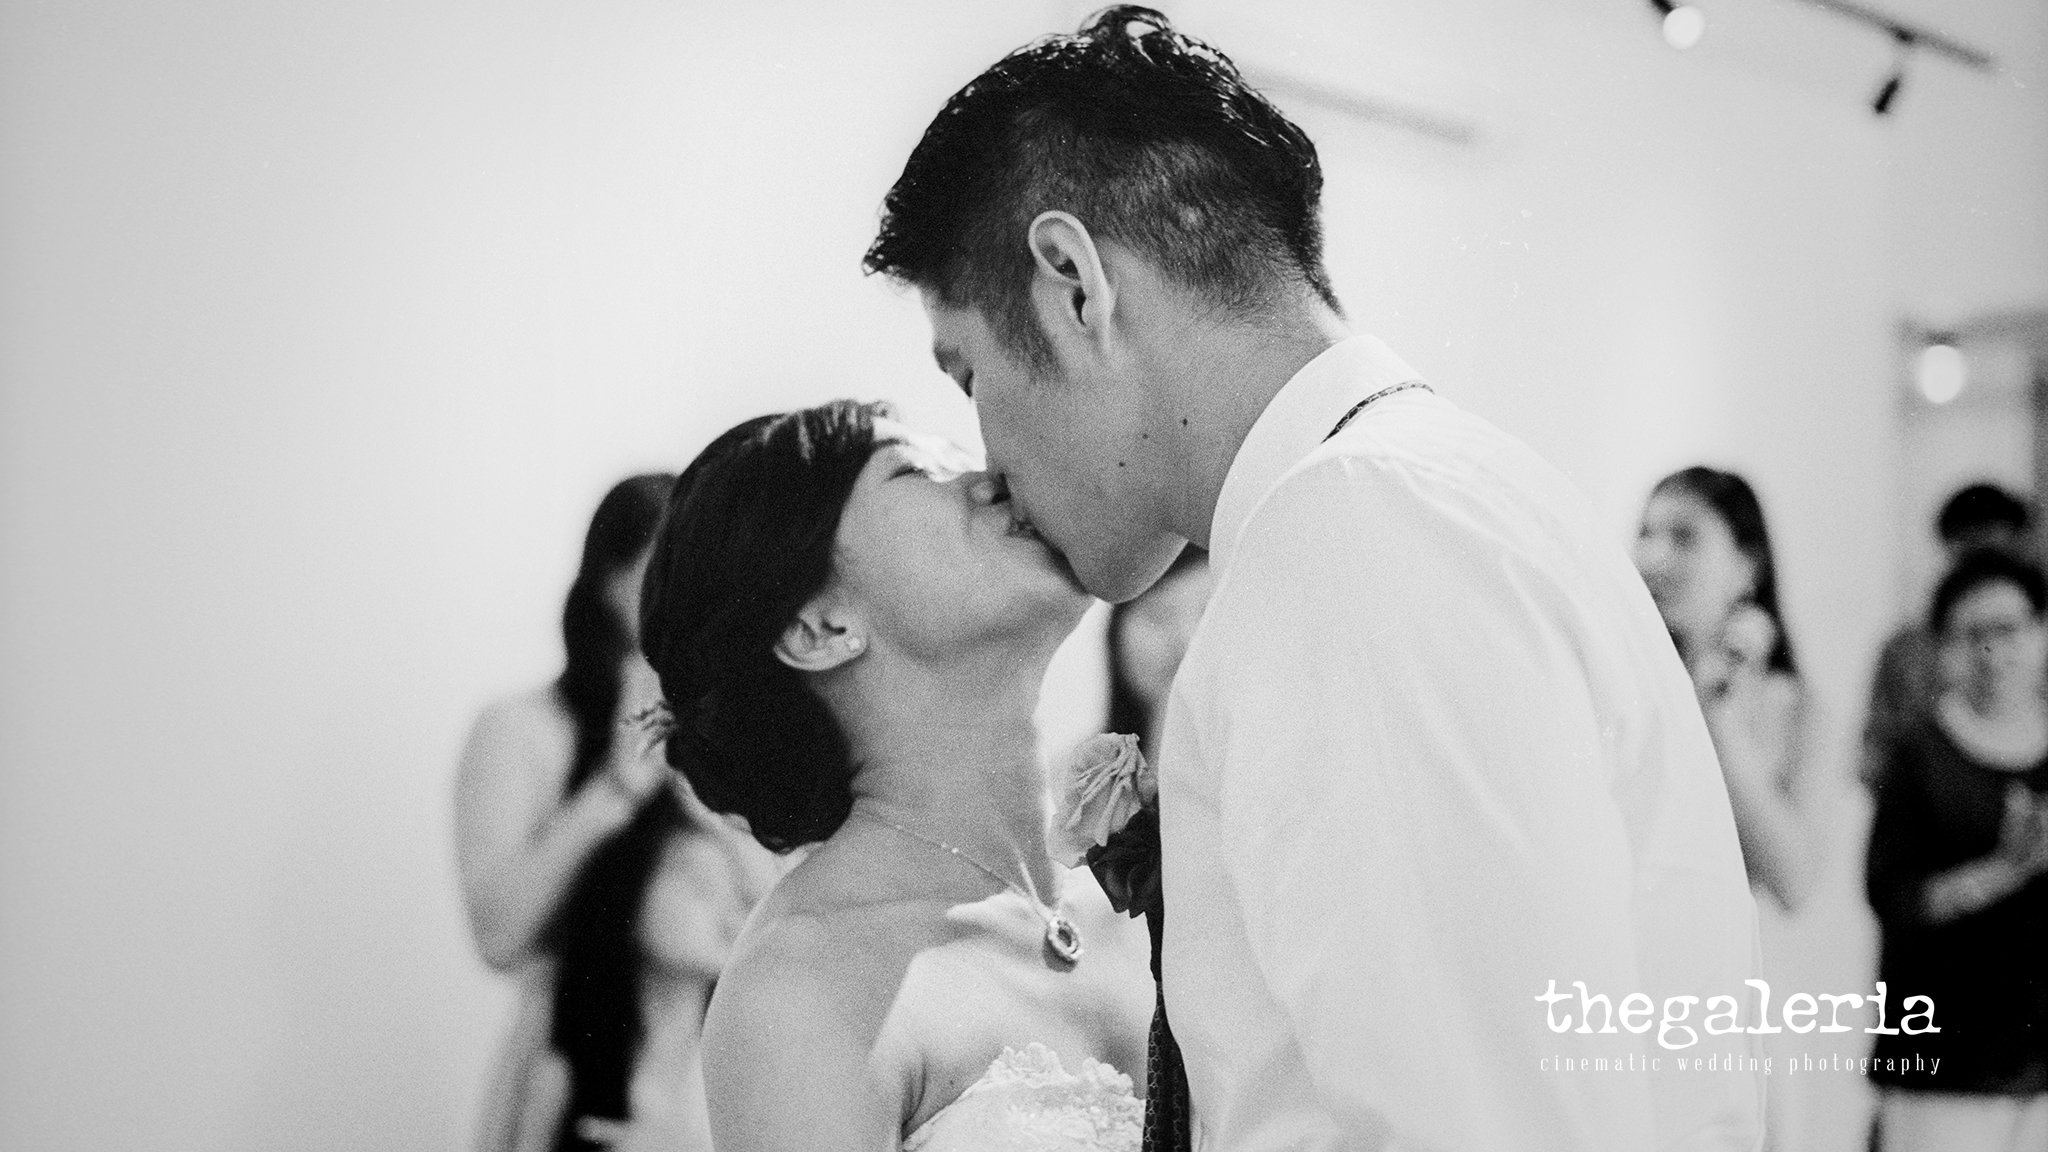 Wedding Photography by Film Photographer Brian Ho. Film: Ilford HP5+